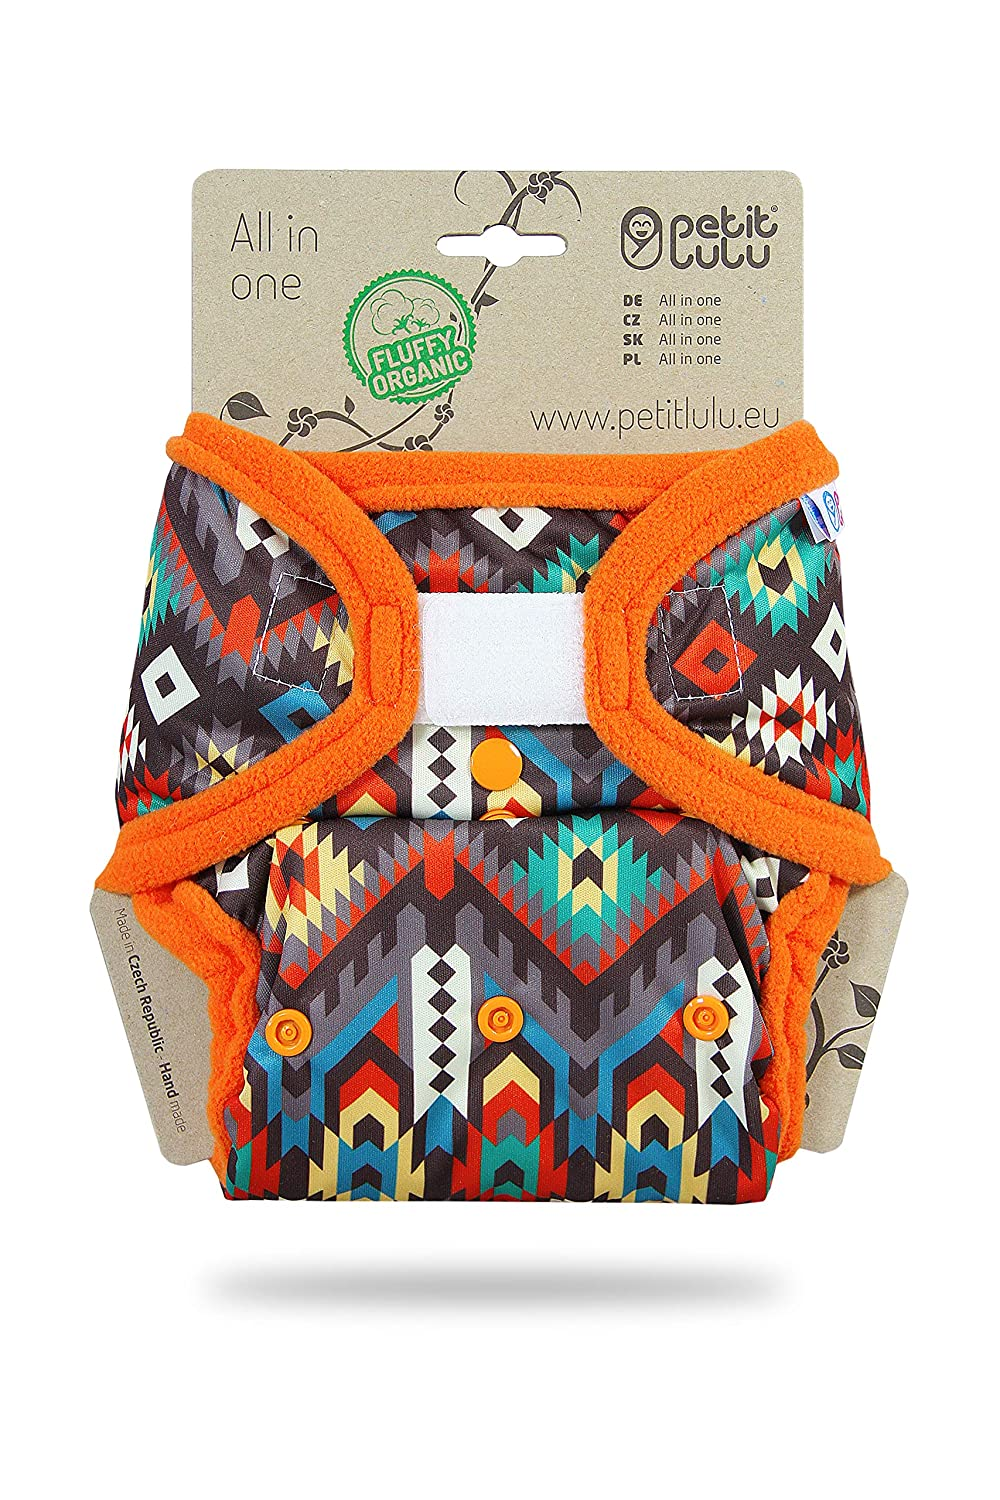 Petit Lulu All-in-ONE Pocket Nappy | AIO | Hook&Loop | Fluffy Organic | Reusable & Washable | Made in Europe (Prehistoric Times)